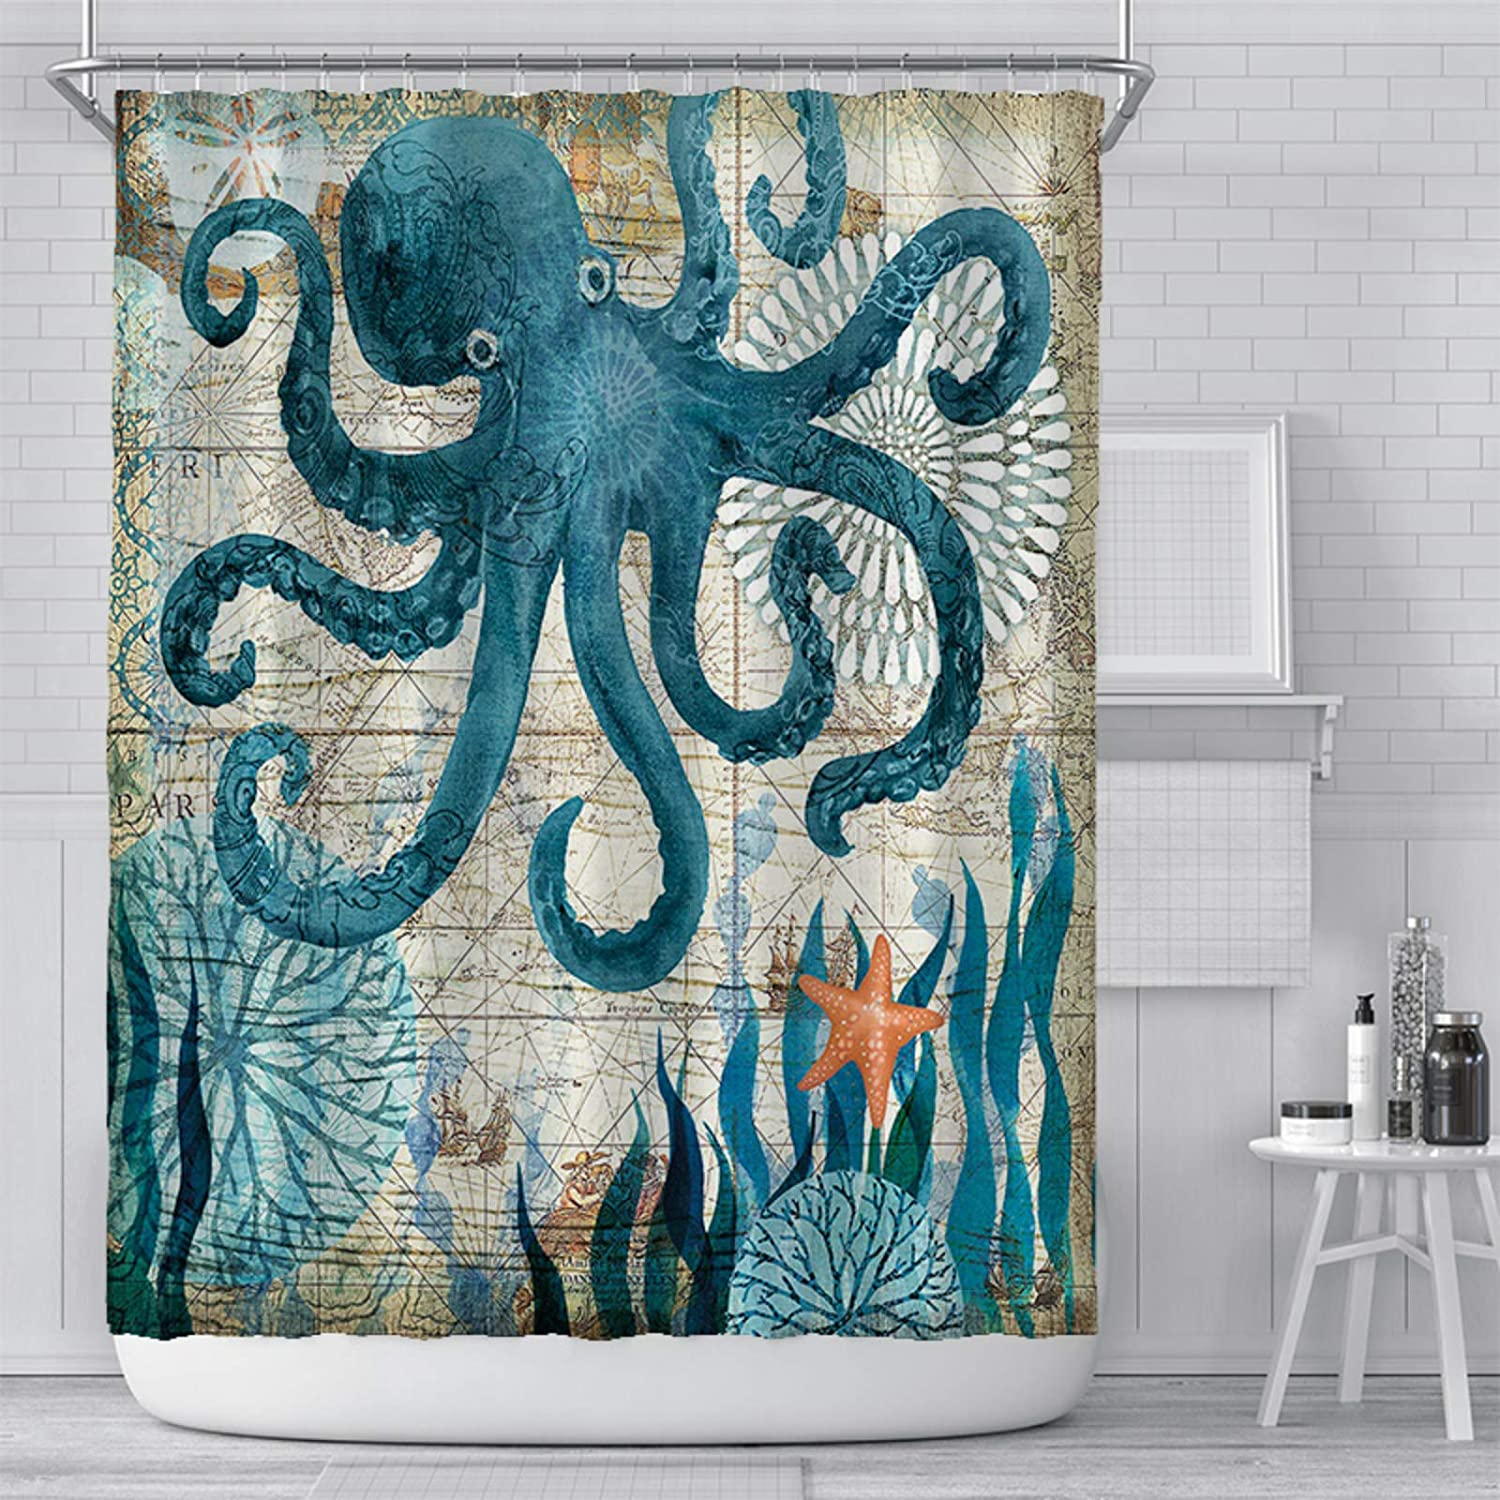 Funny Shower Curtain for Ocean Themed, Octopus Bathroom Decor Ship Sail Old Boat in Ocean Waves, Blue Fabric Bath Curtains Set with Hooks, 72 x 72 Inches